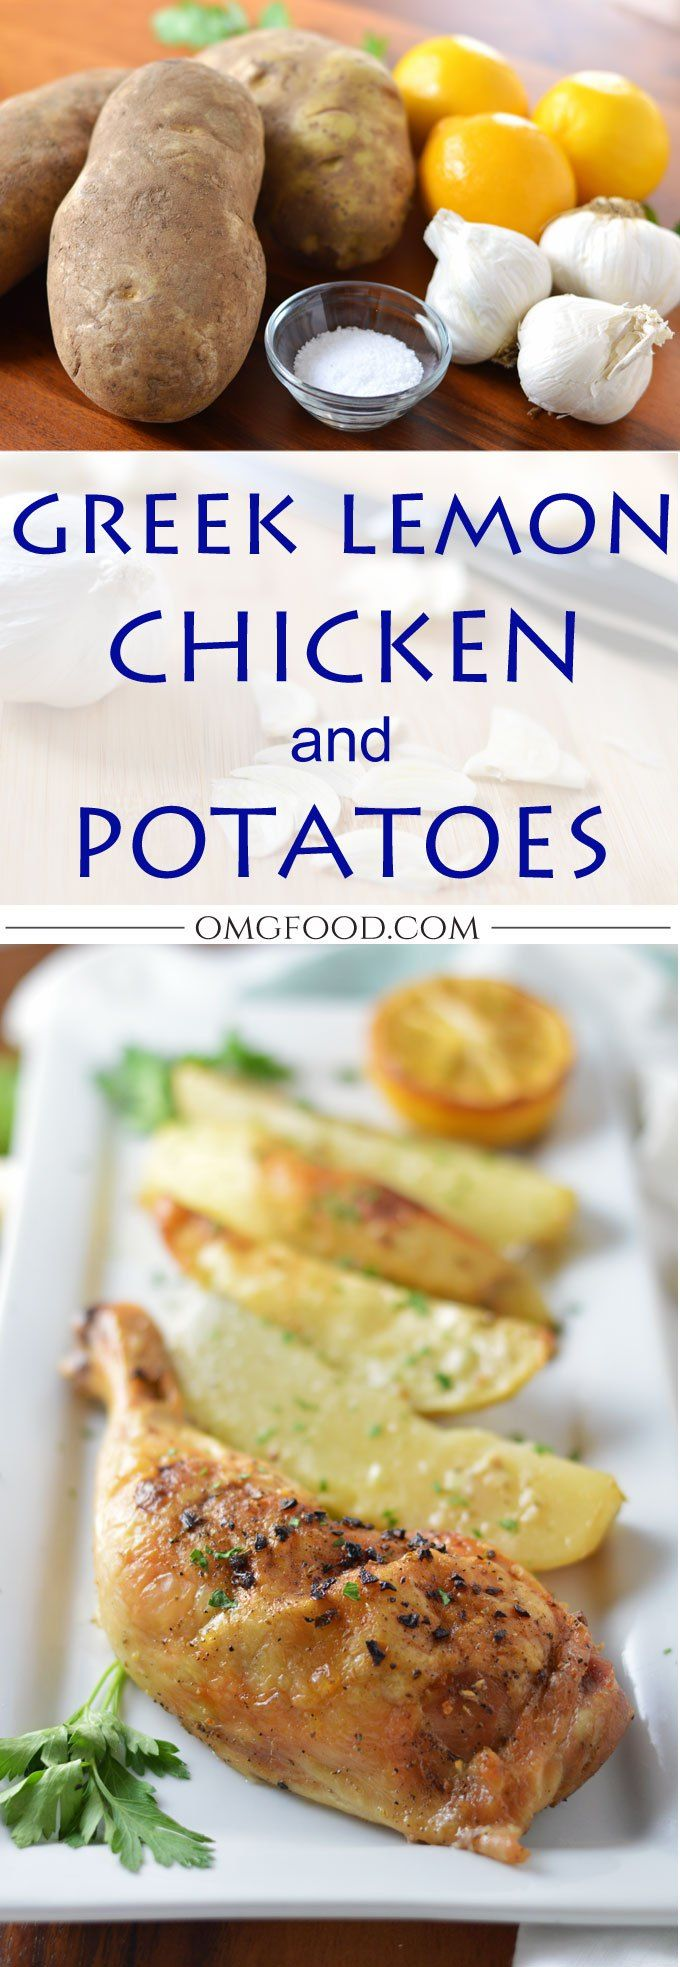 Greek Lemon Chicken and Potatoes | omgfood.com